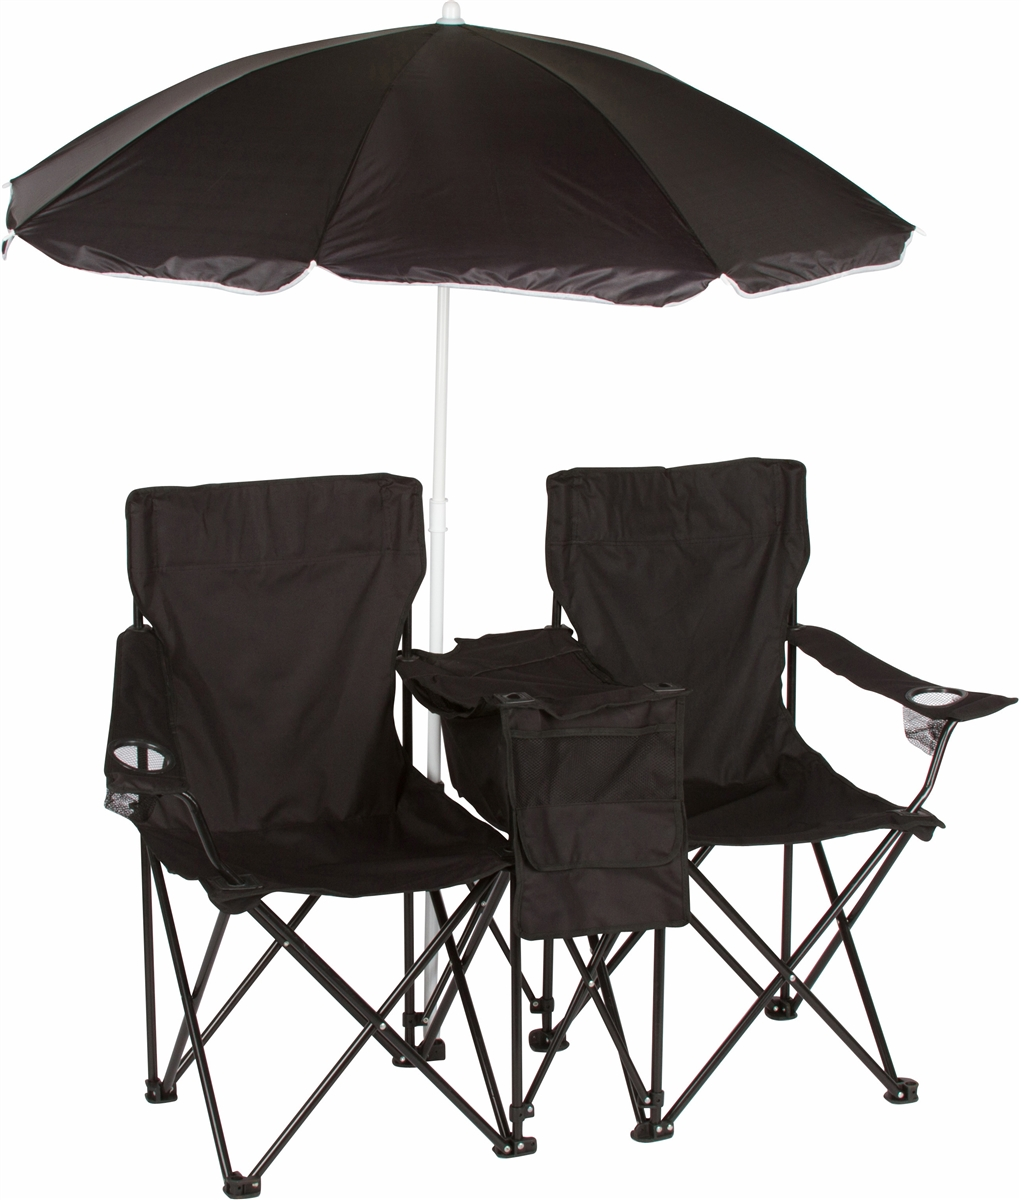 Tremendous Double Folding Camp And Beach Chair With Removable Umbrella And Cooler By Trademark Innovations Black Gmtry Best Dining Table And Chair Ideas Images Gmtryco